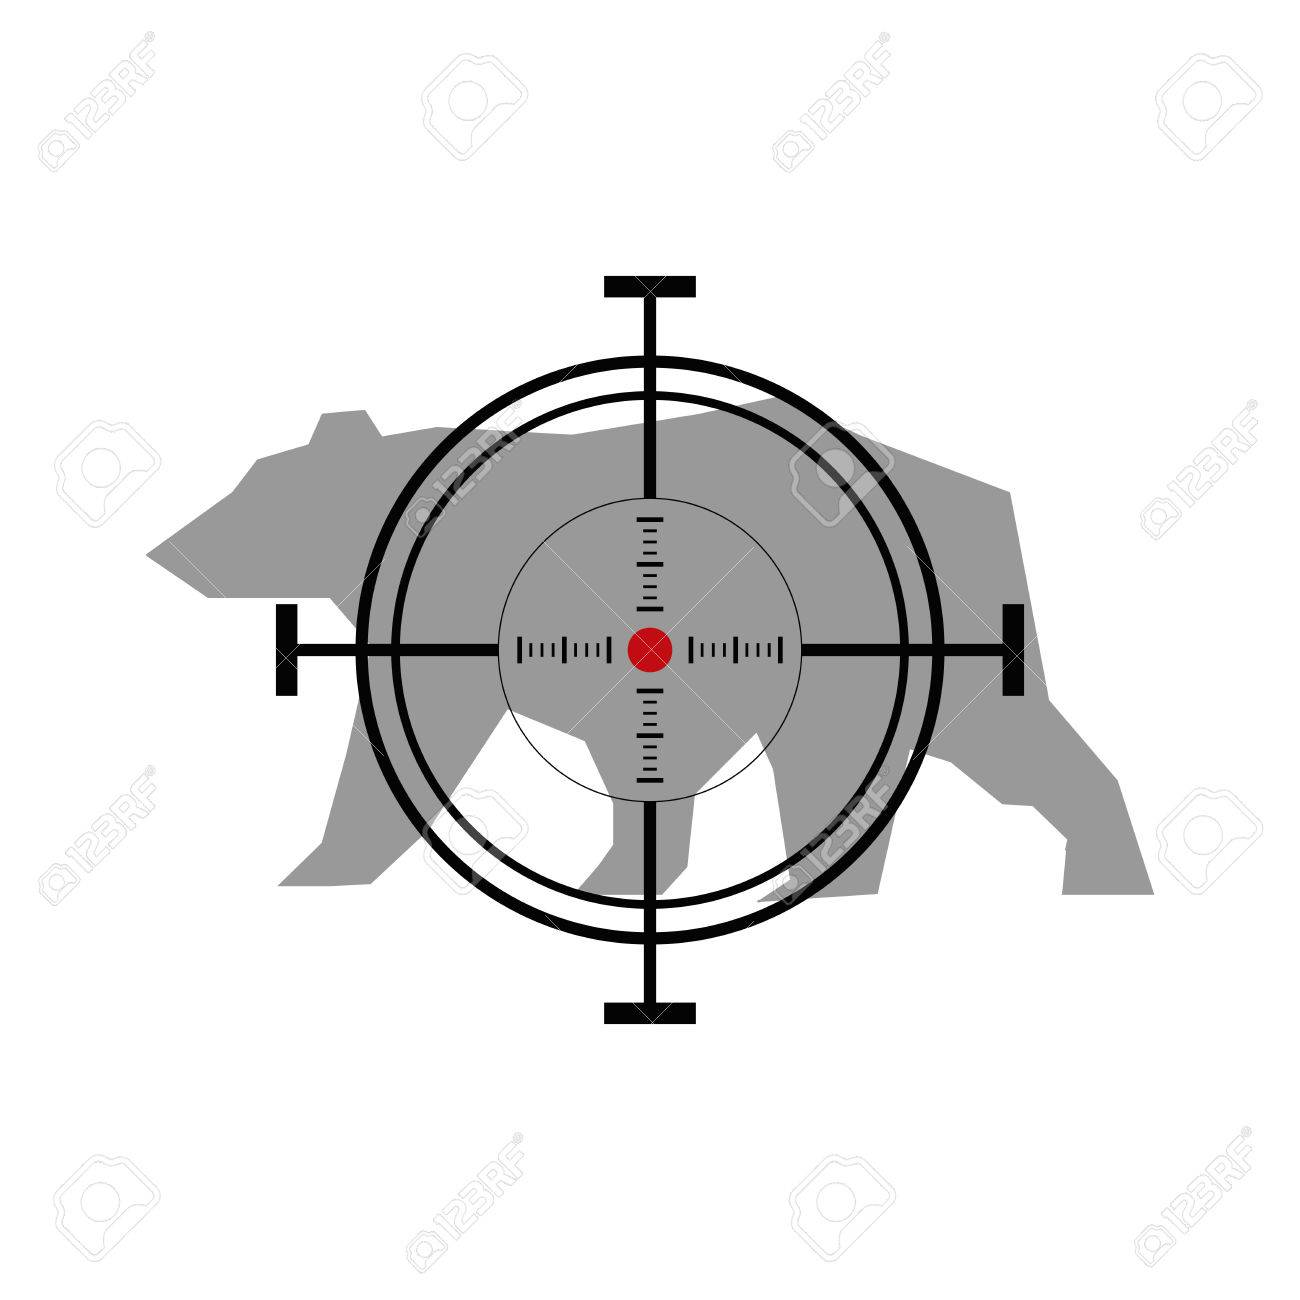 hight resolution of illustration with bear hunting crosshair target stock vector 49503572